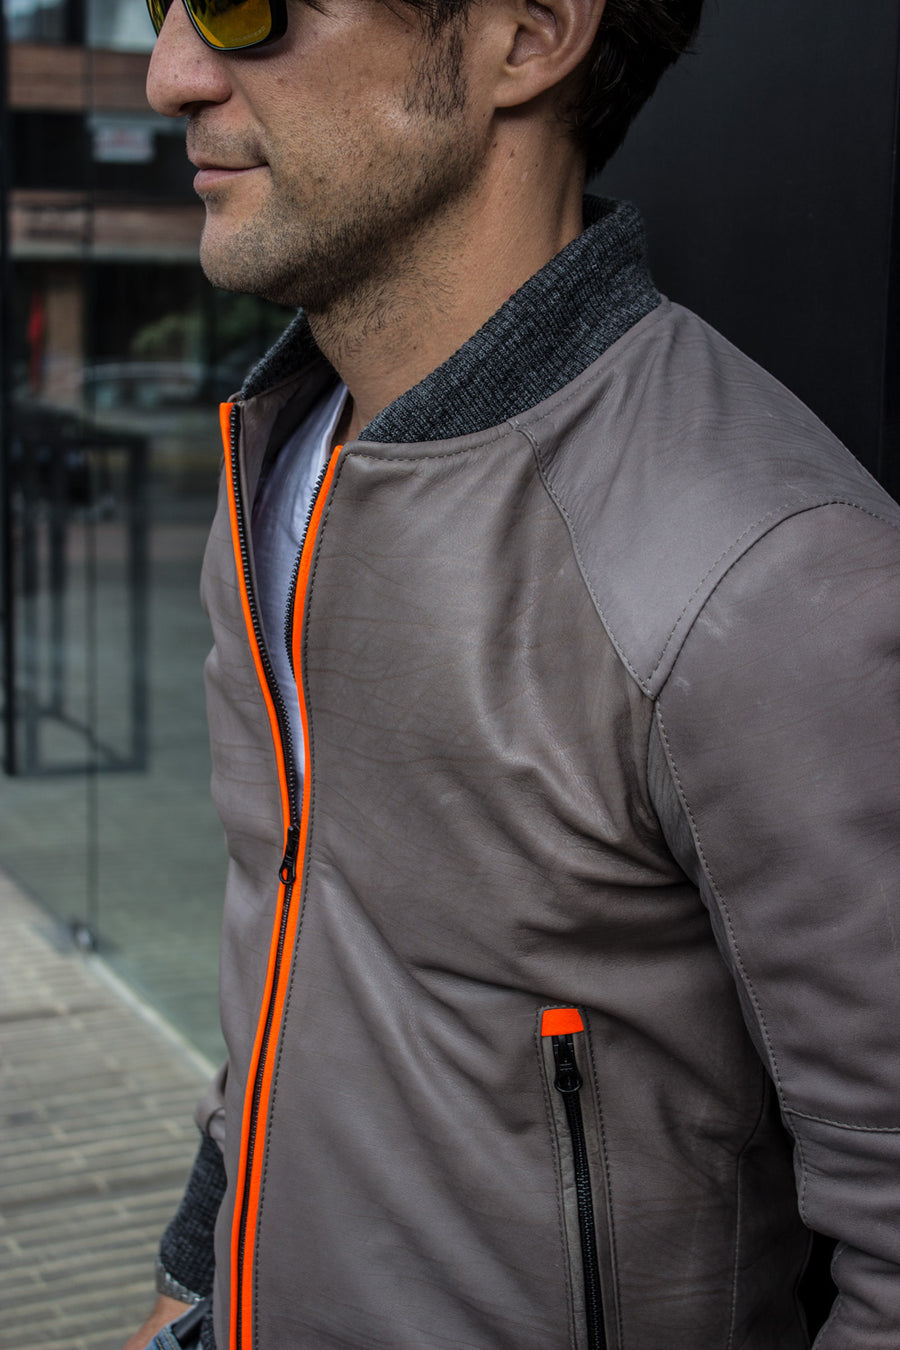 LUXUS HI-TECH lightweight Bomber Jacket in Calfskin Leather - Gray